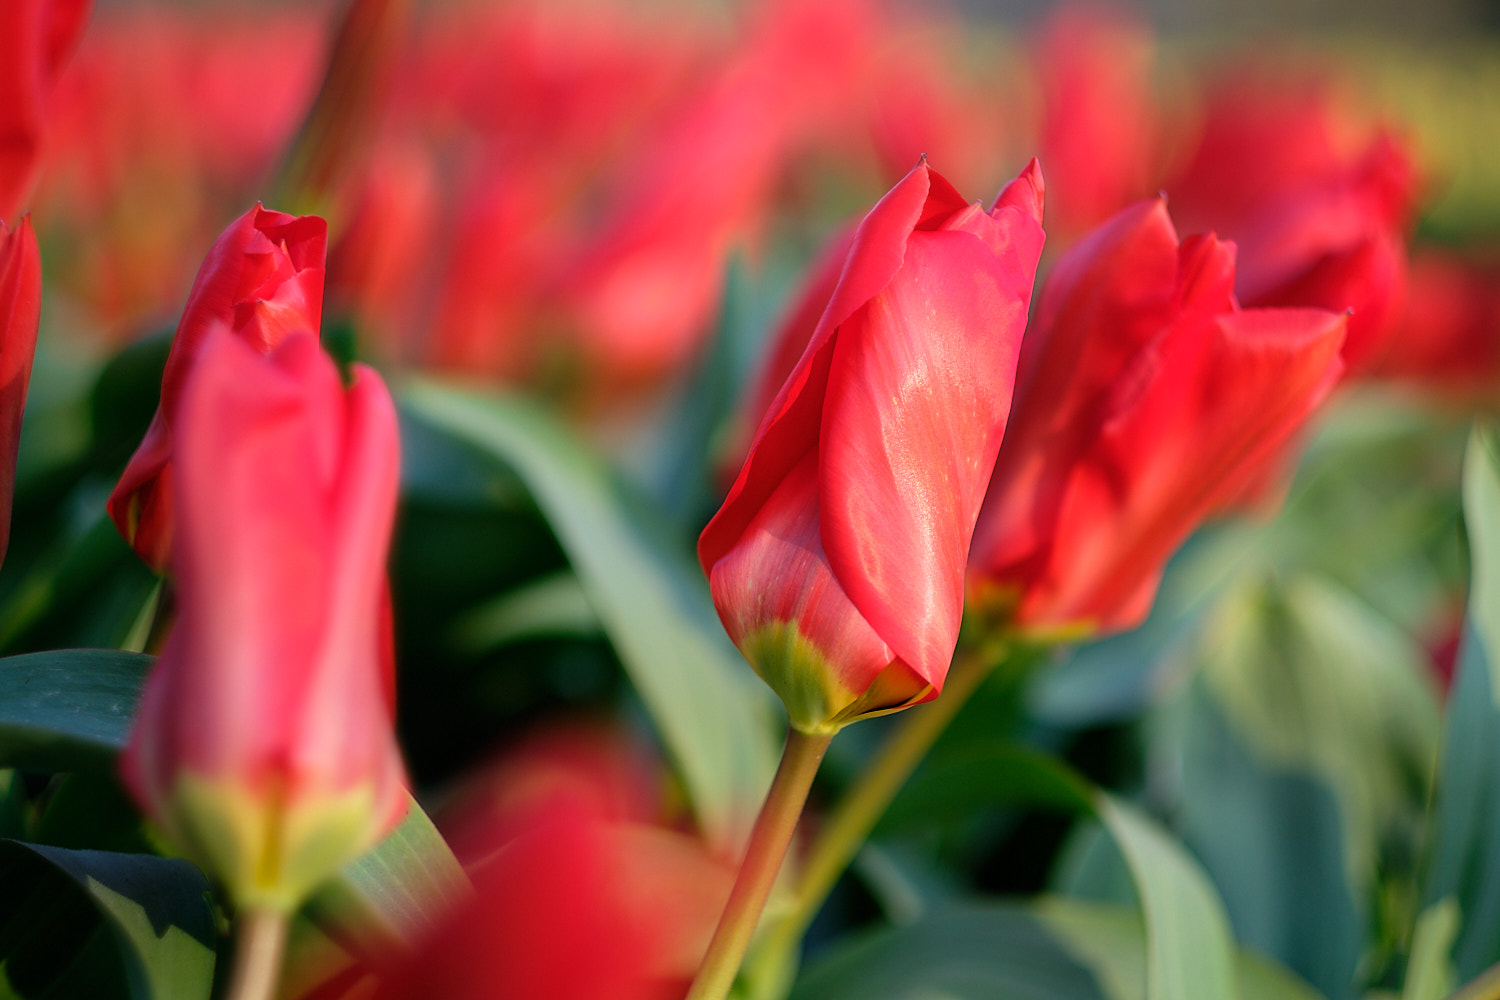 Red tulips in Keukenhof, Holland, The Netherlands